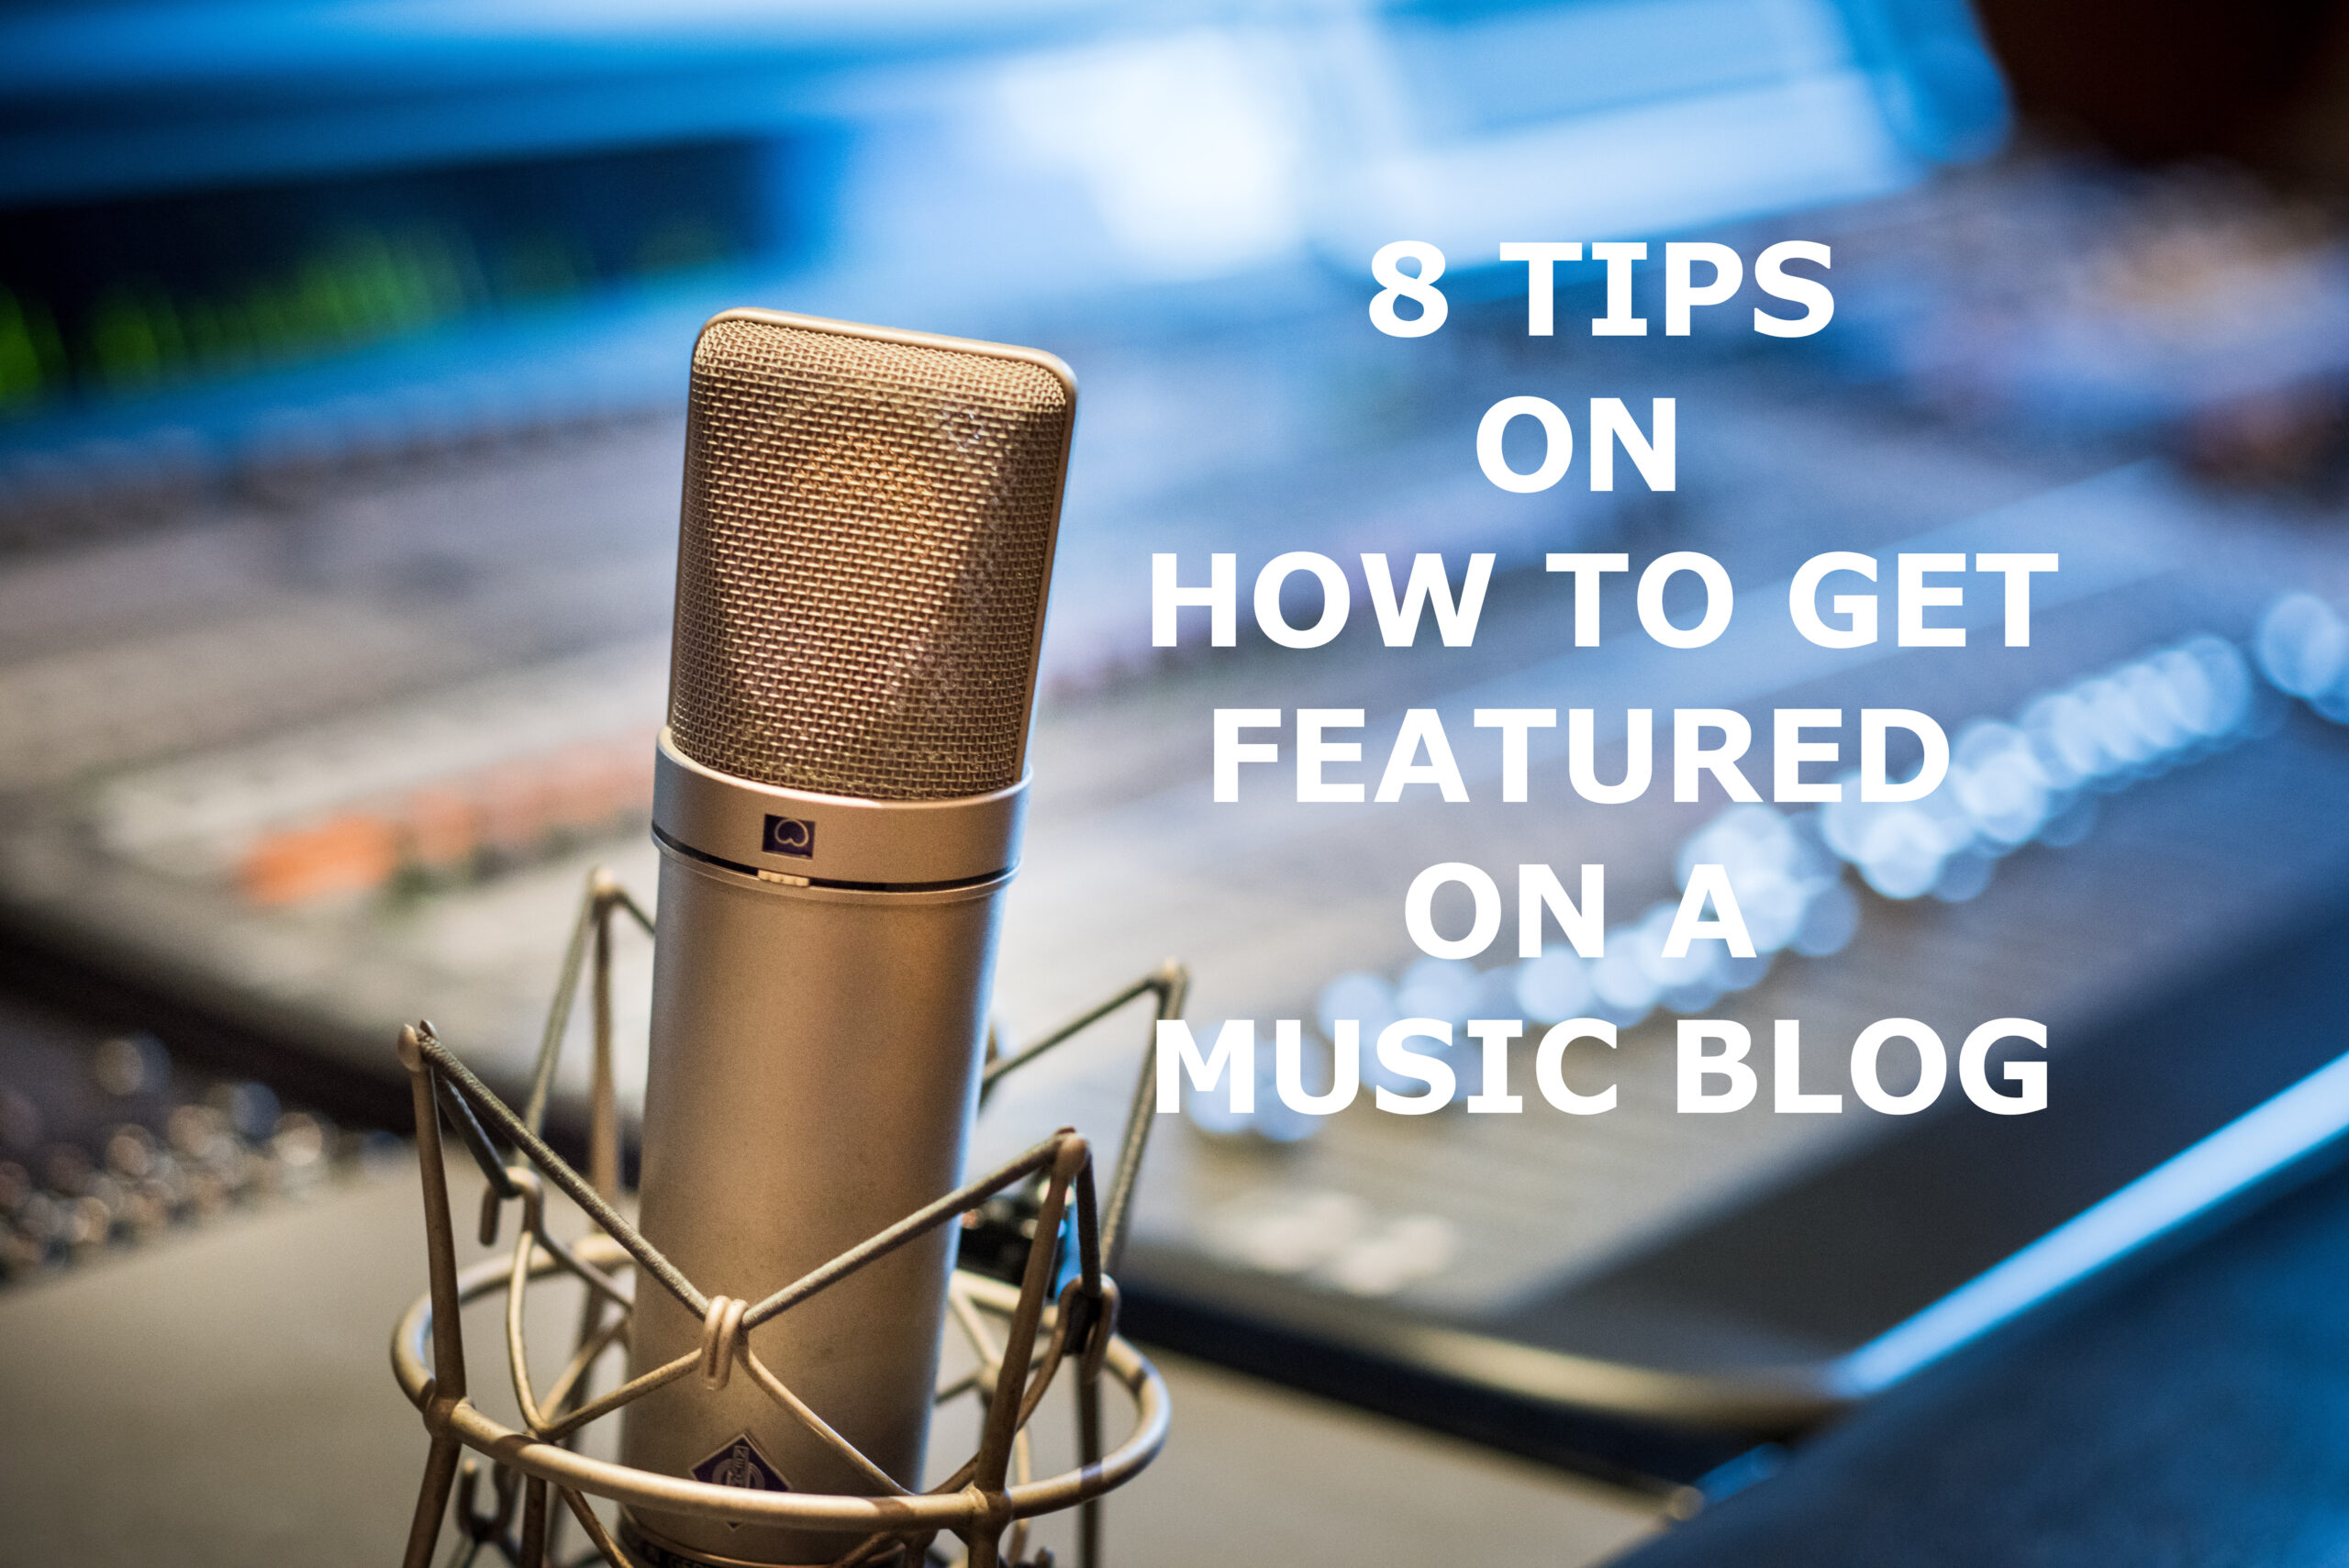 8 Tips on How to Get Featured on a Music Blog